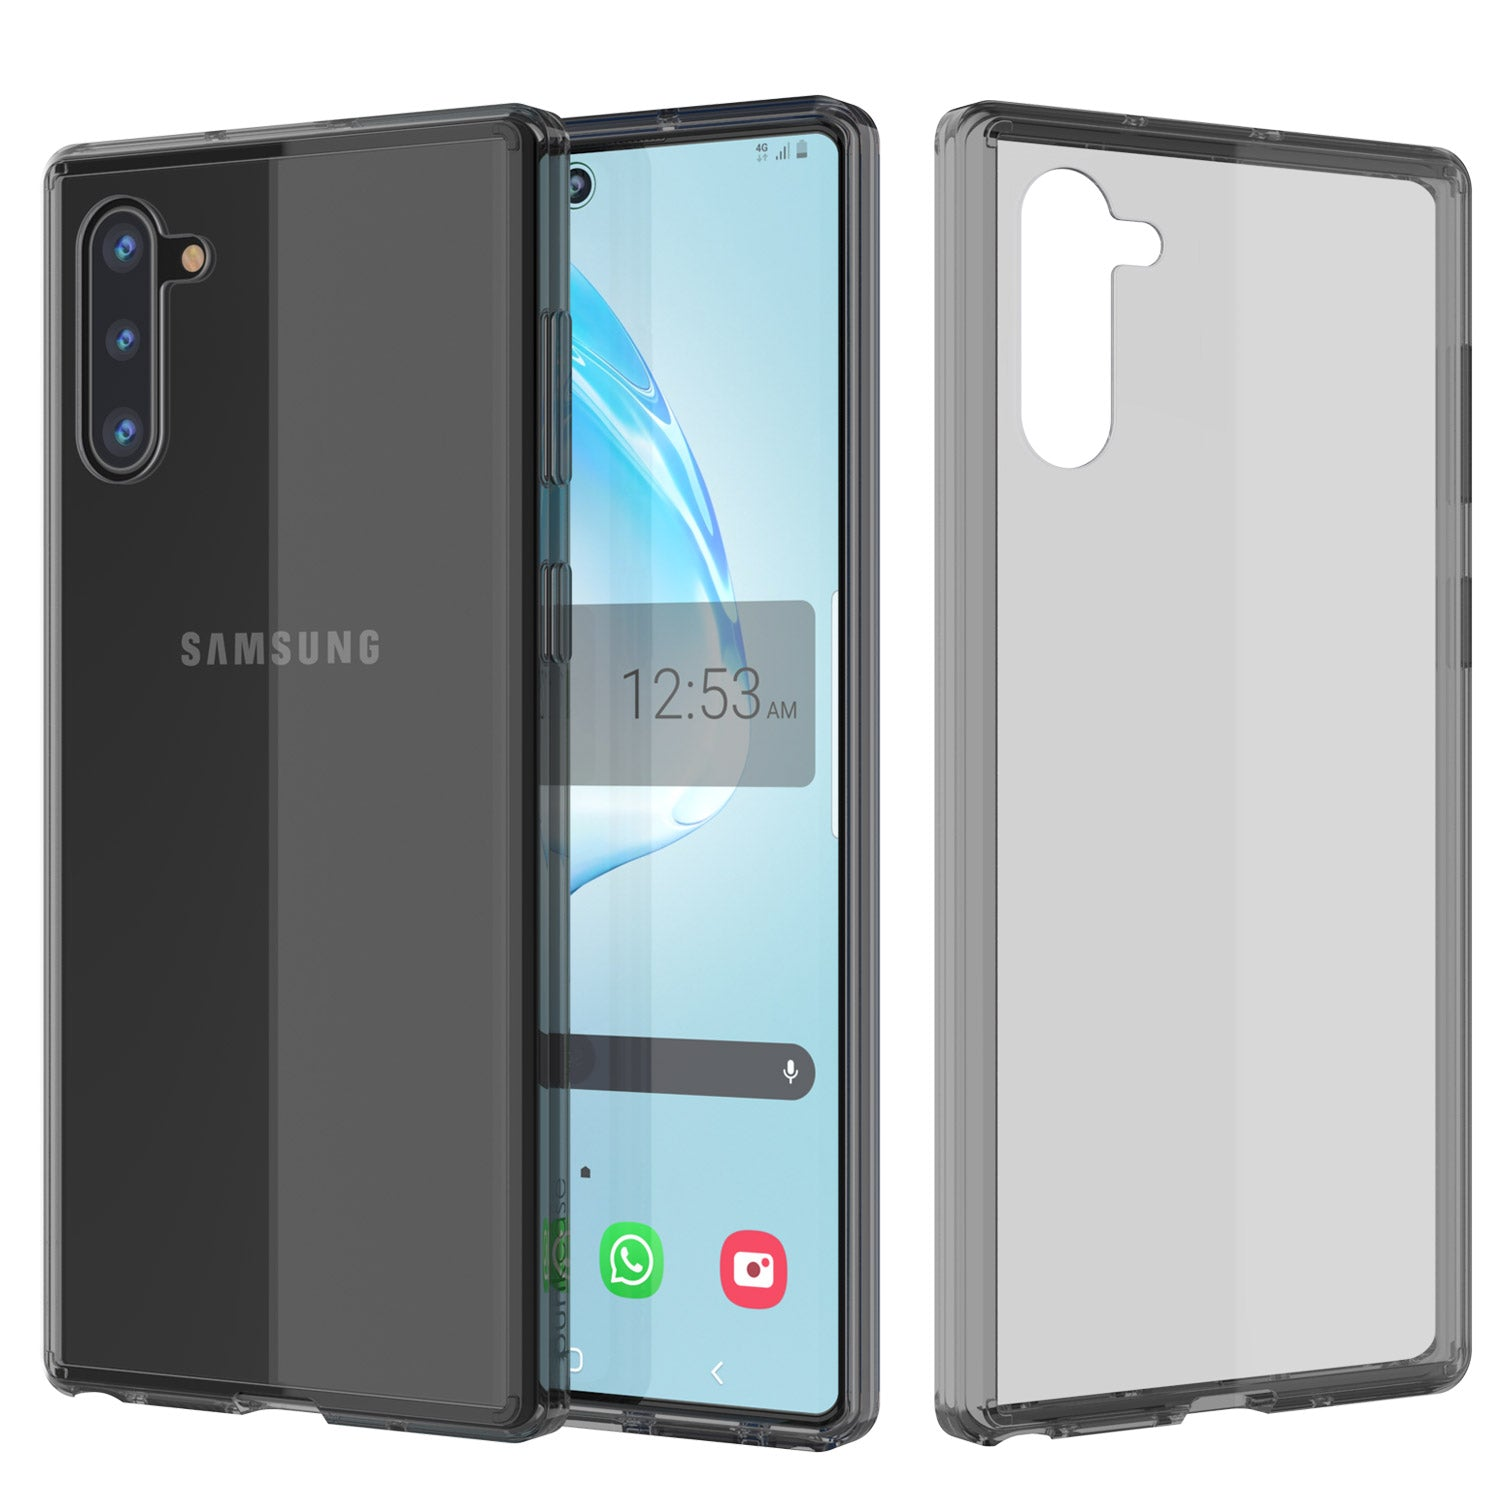 Galaxy Note 10 Punkcase Lucid-2.0 Series Slim Fit Armor Crystal Black Case Cover